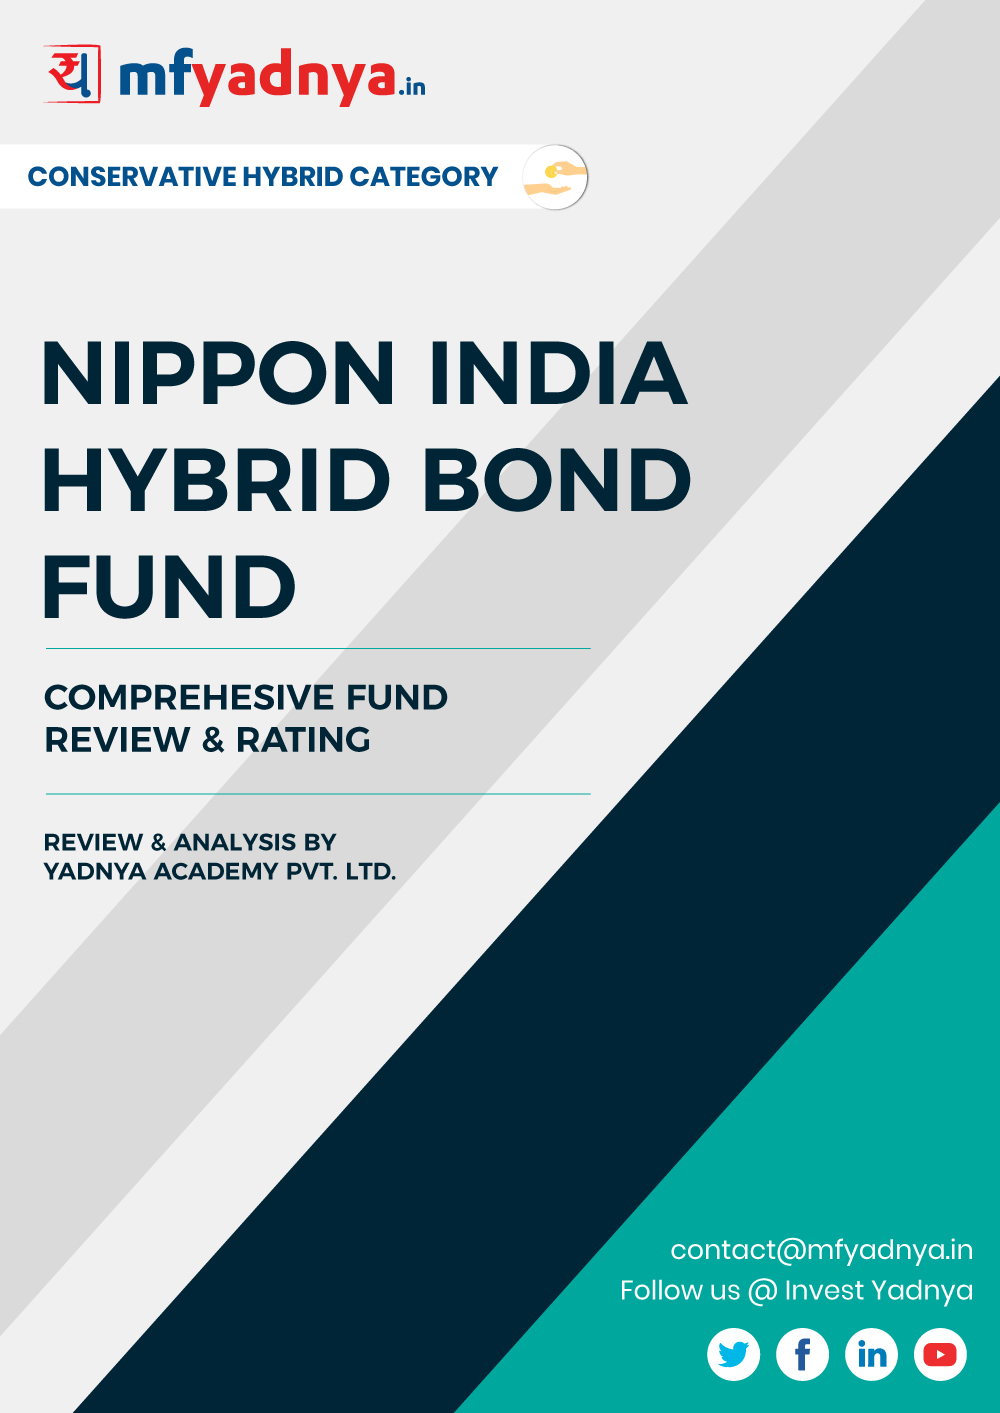 Conservative Hybrid Category Review - NIPPON India Hybrid Bond Fund . Most Comprehensive and detailed MF review based on Yadnya's proprietary methodology of Green, Yellow & Red Star. Detailed Analysis & Review based on March 31st, 2020 data. Review also gives you the historical trend of the performance which will show the fund's performance consistency.